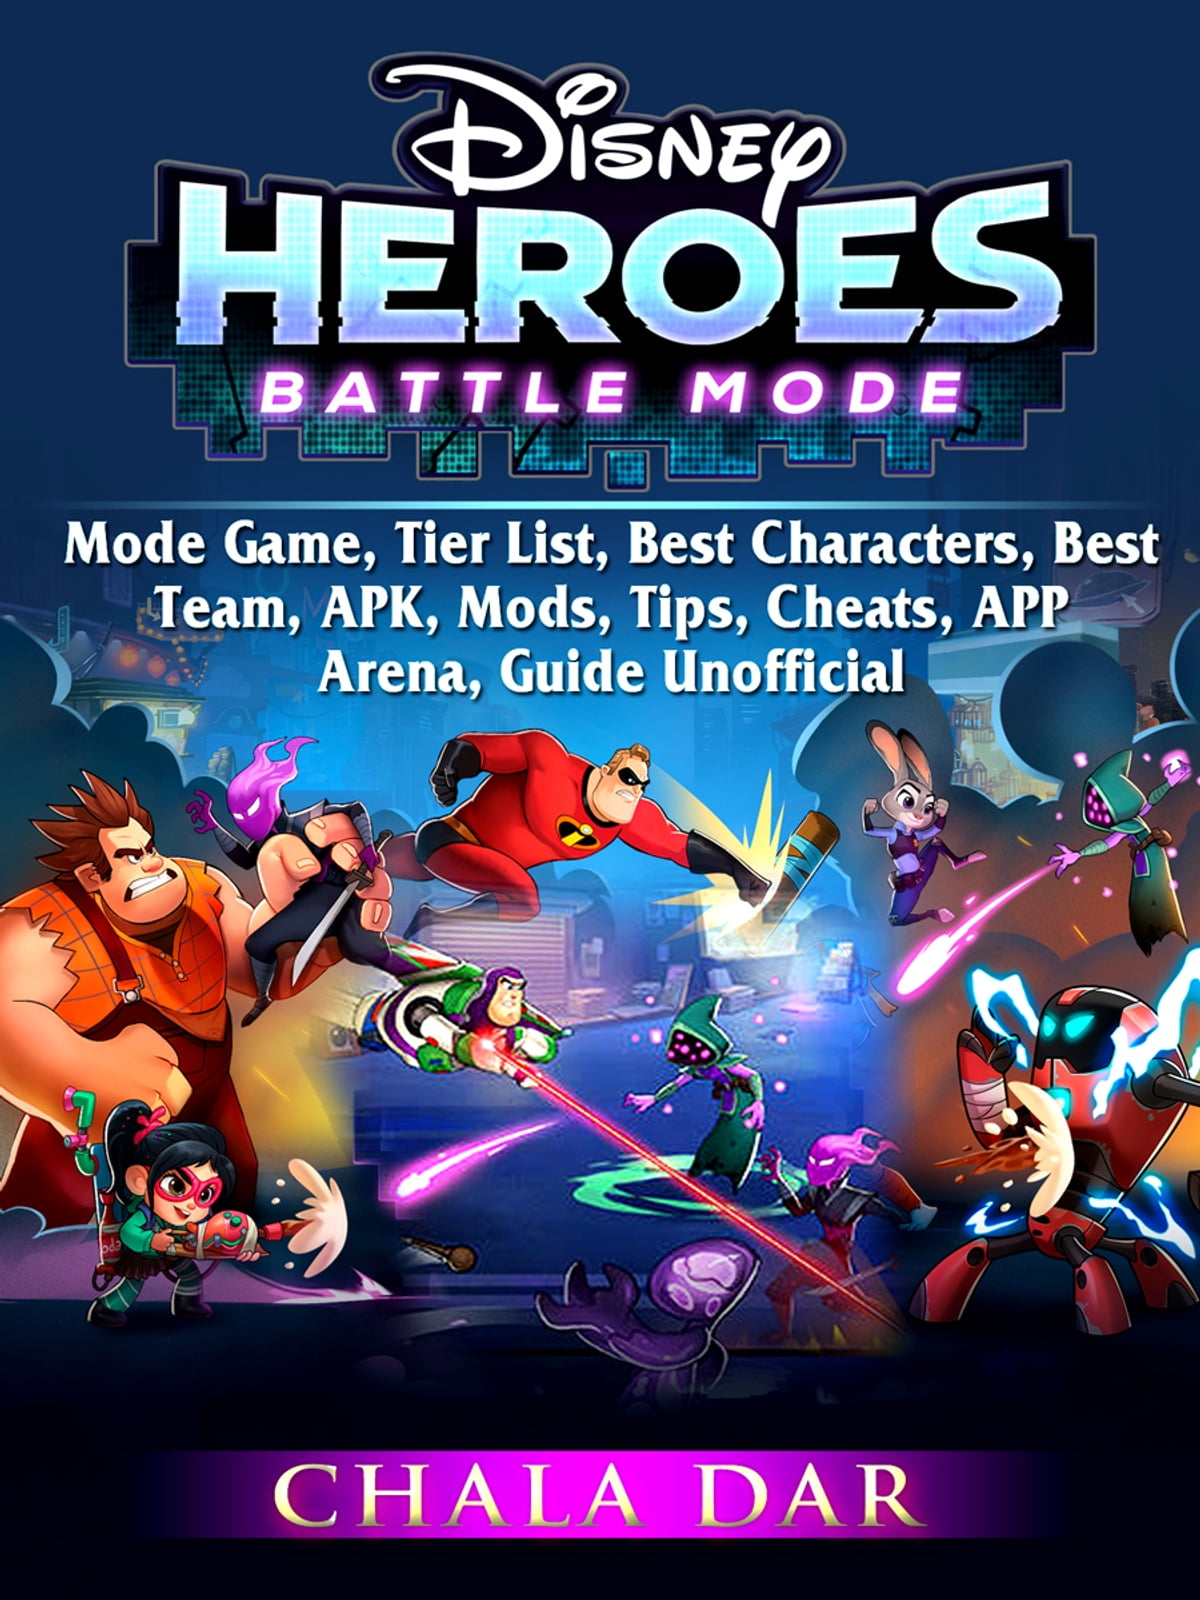 Disney Heroes Battle Mode Game, Tier List, Best Characters, Best Team, APK,  Mods, Tips, Cheats, APP, Arena, Guide Unofficial ebook by Chala Dar -